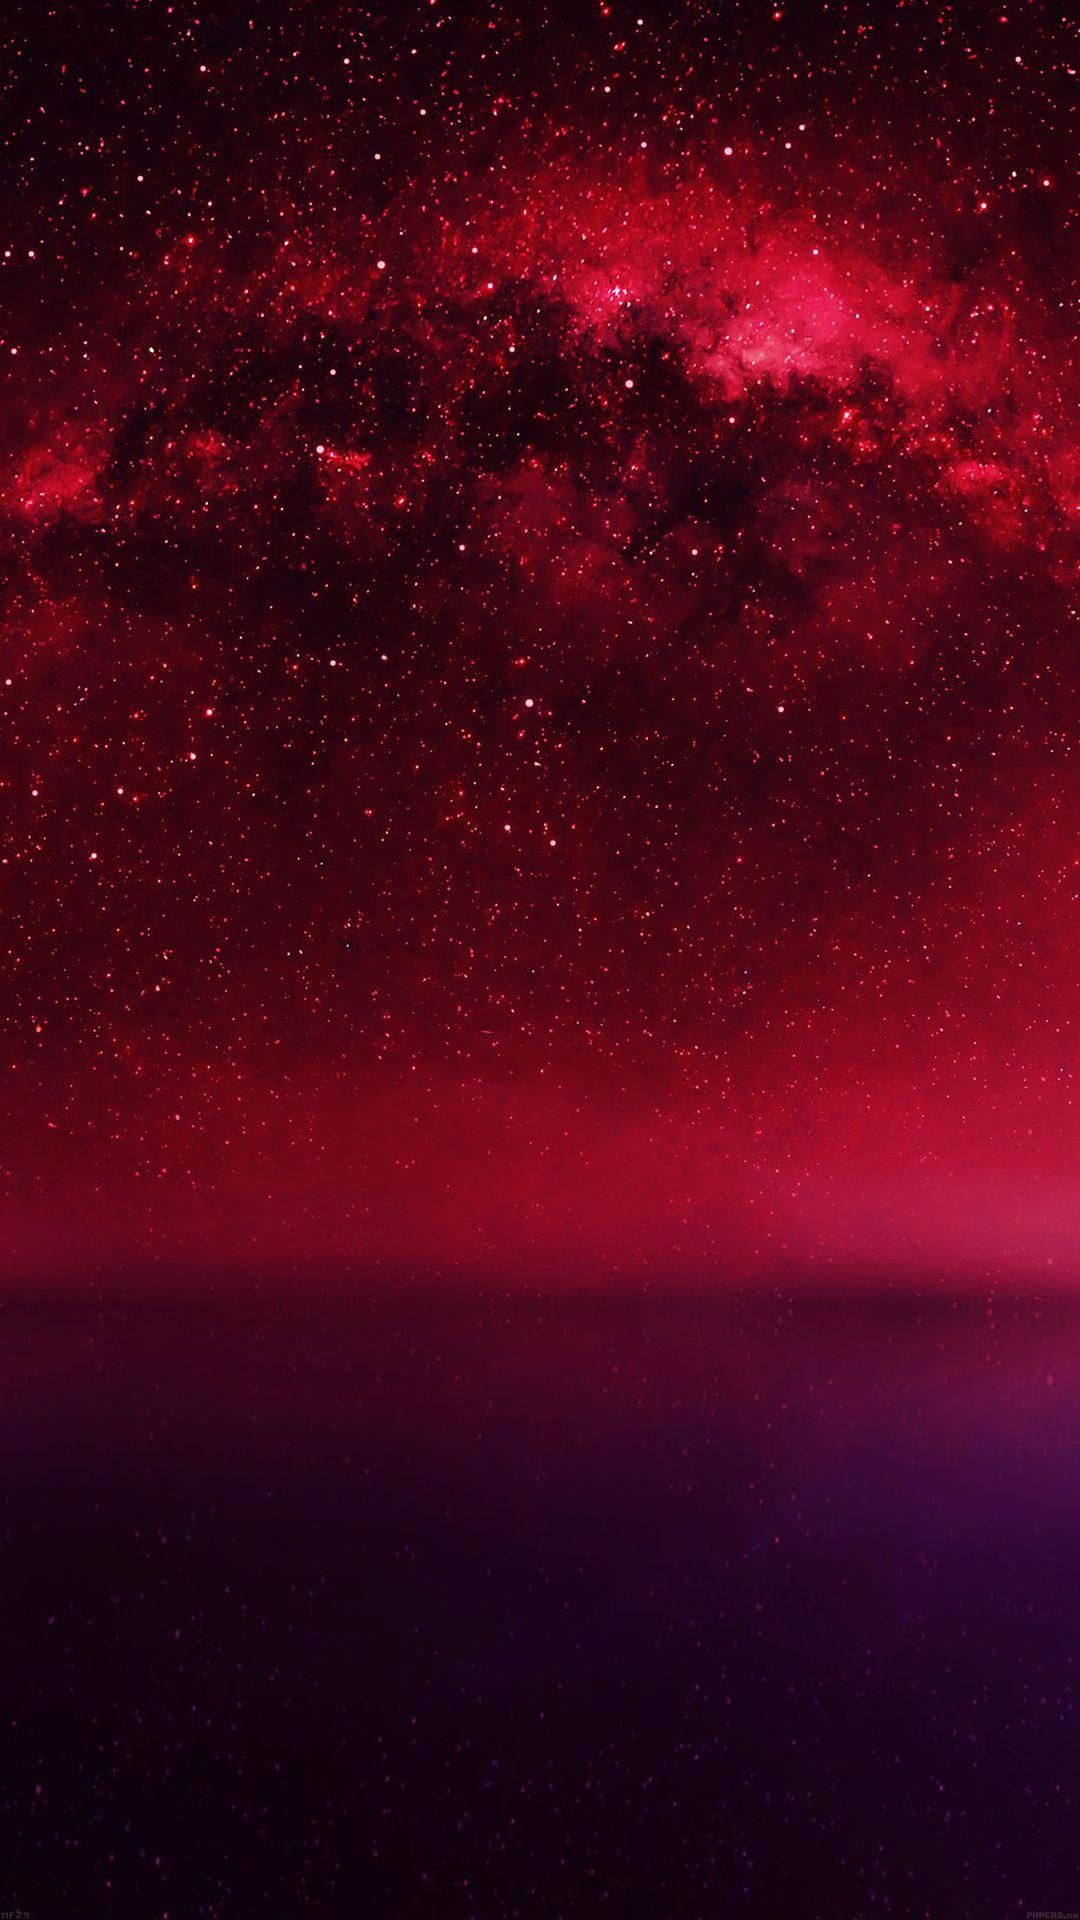 Cosmos Red Night Live Lake Space Starry Iphone 6 Wallpaper Takinggreatpicswithaniphone Space Iphone Wallpaper Iphone 5s Wallpaper Live Wallpaper Iphone